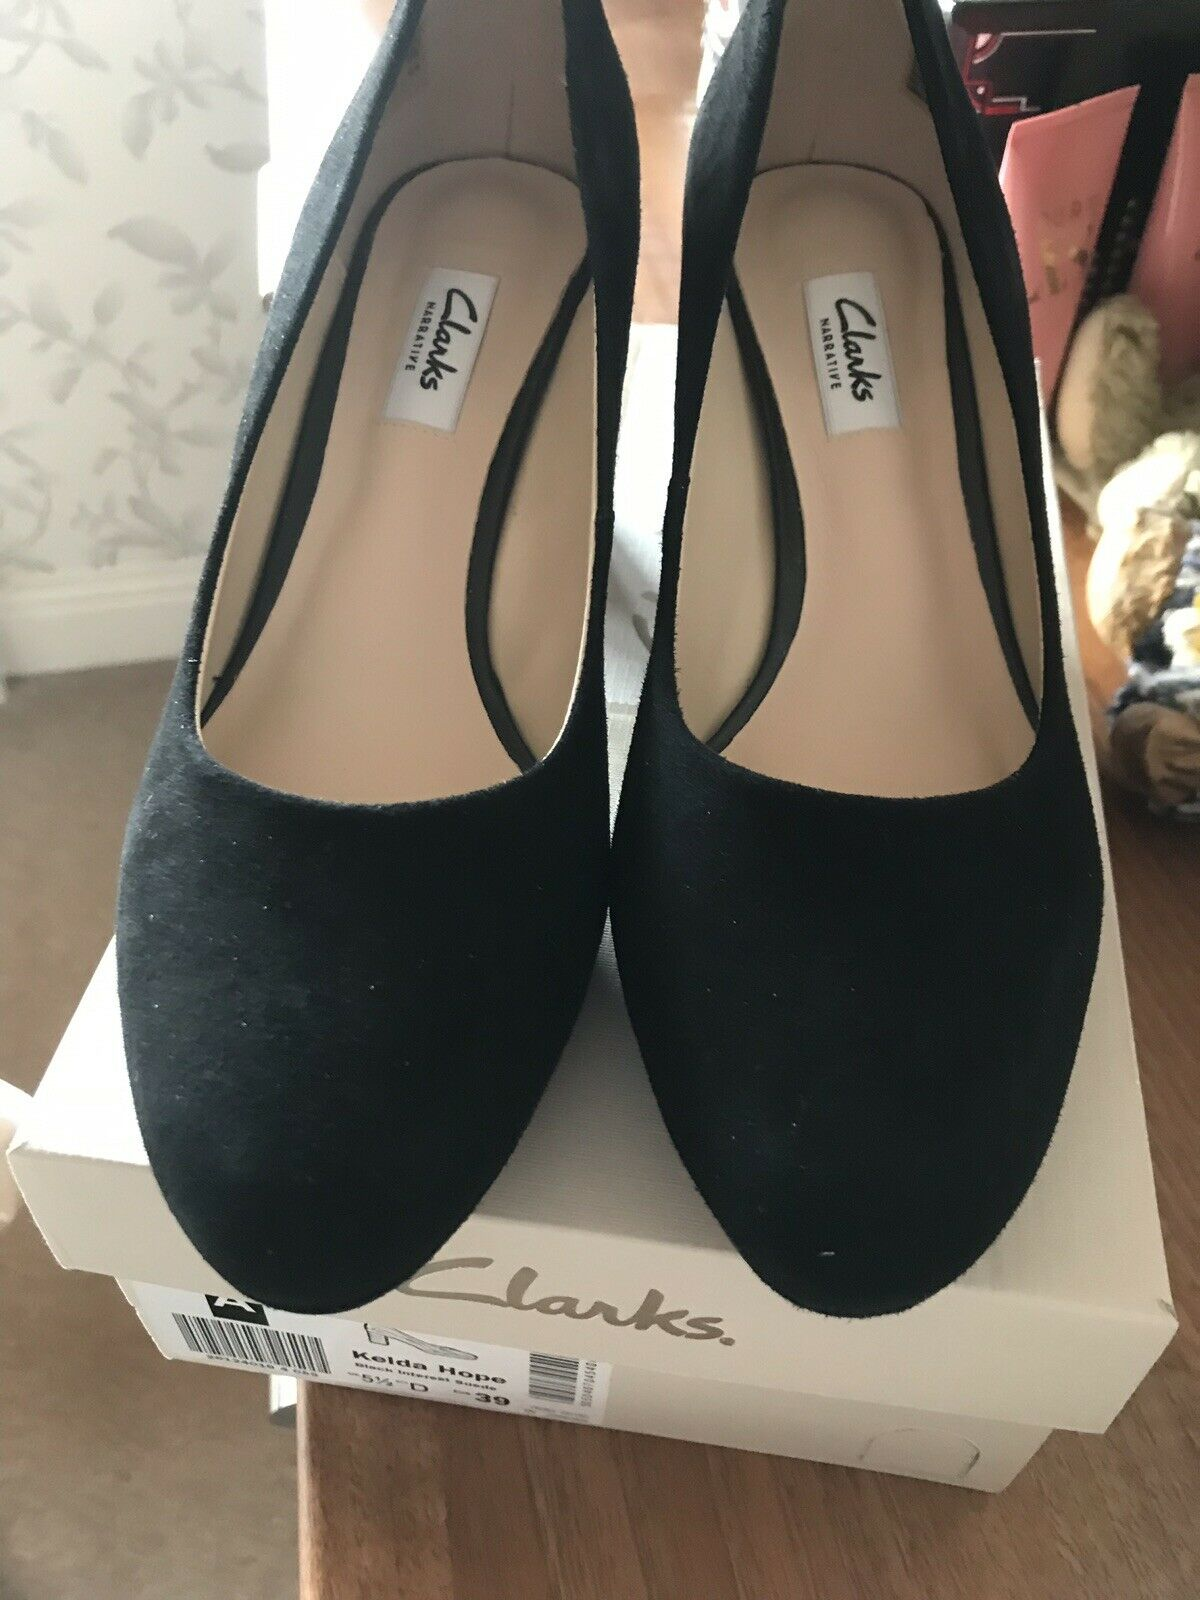 Clarks 5.5 D New With Box